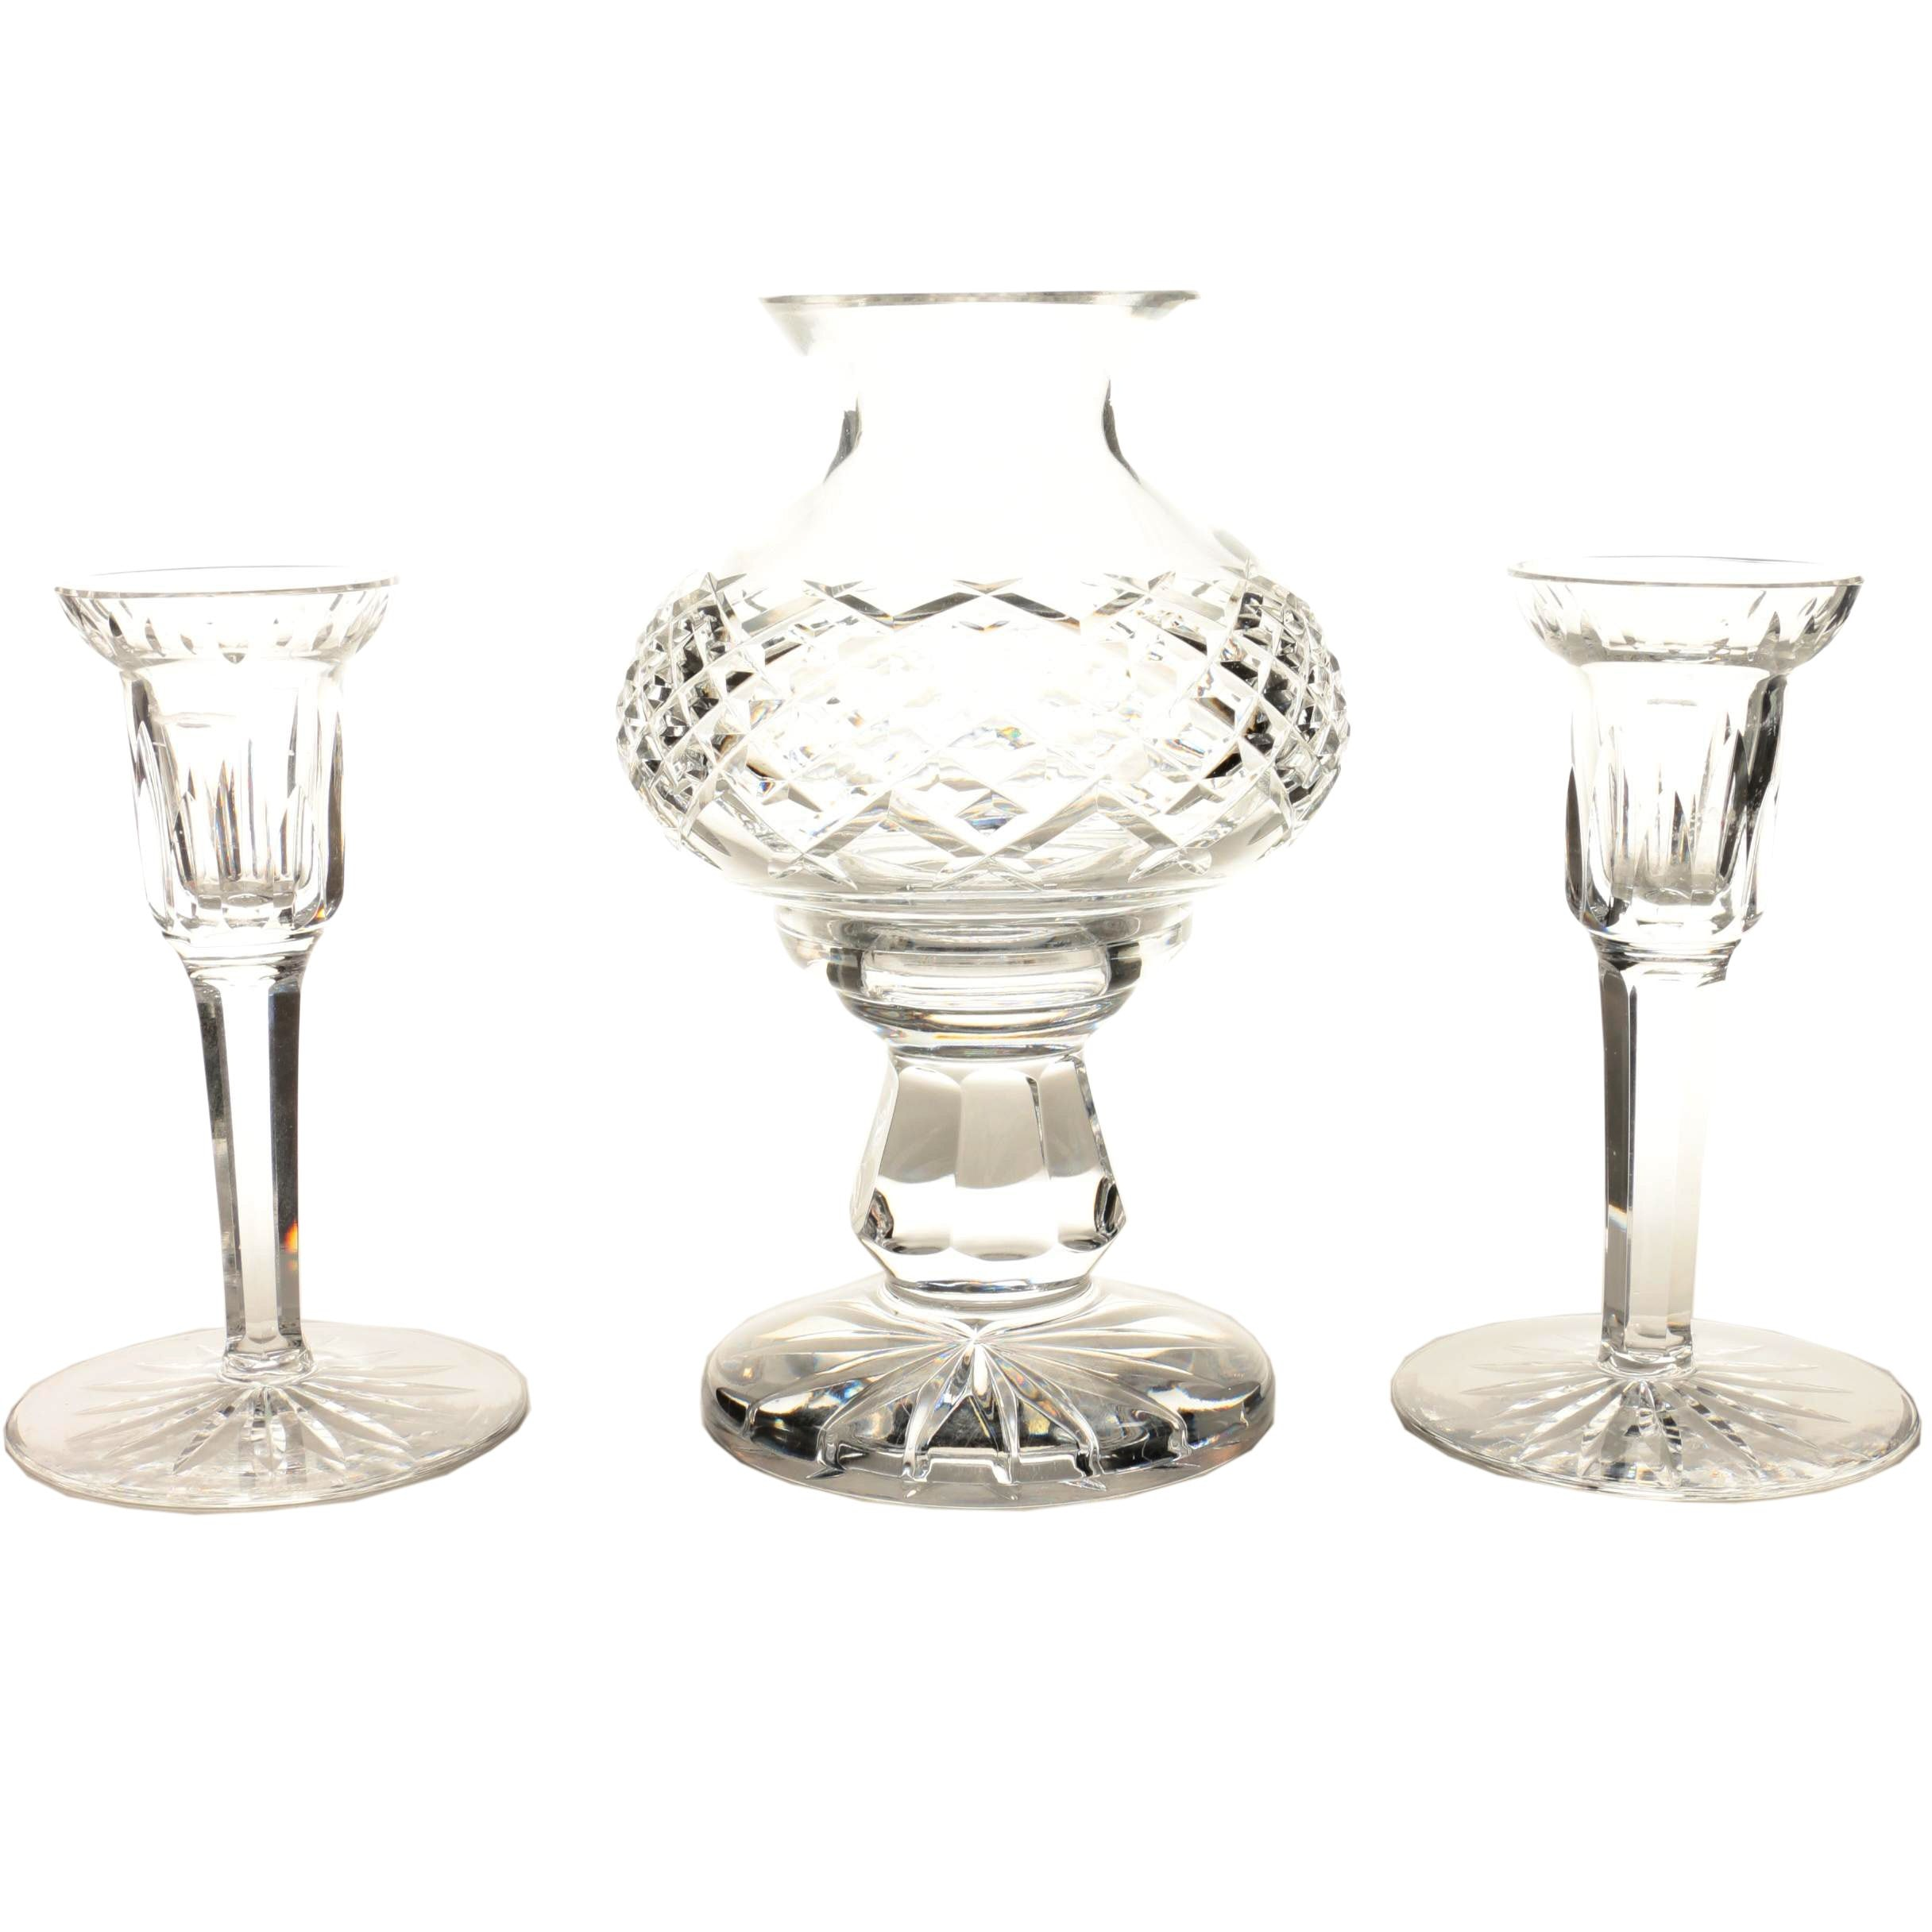 Waterford Crystal Hurricane Lamp and Candle Holders